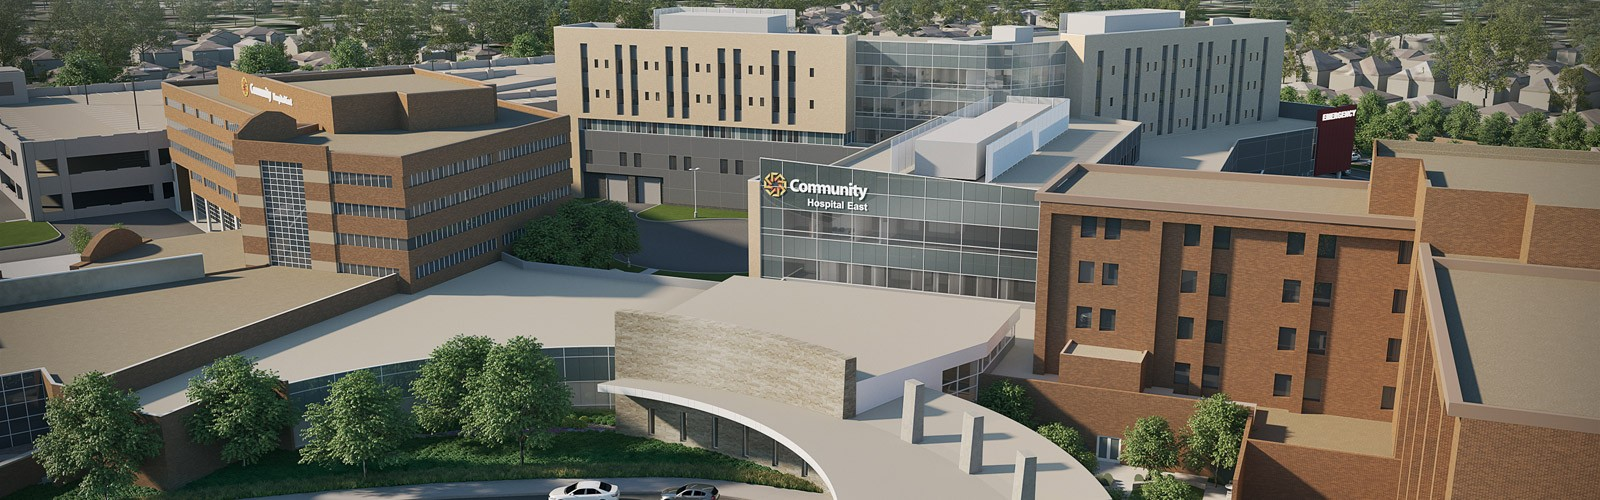 New Community Hospital East